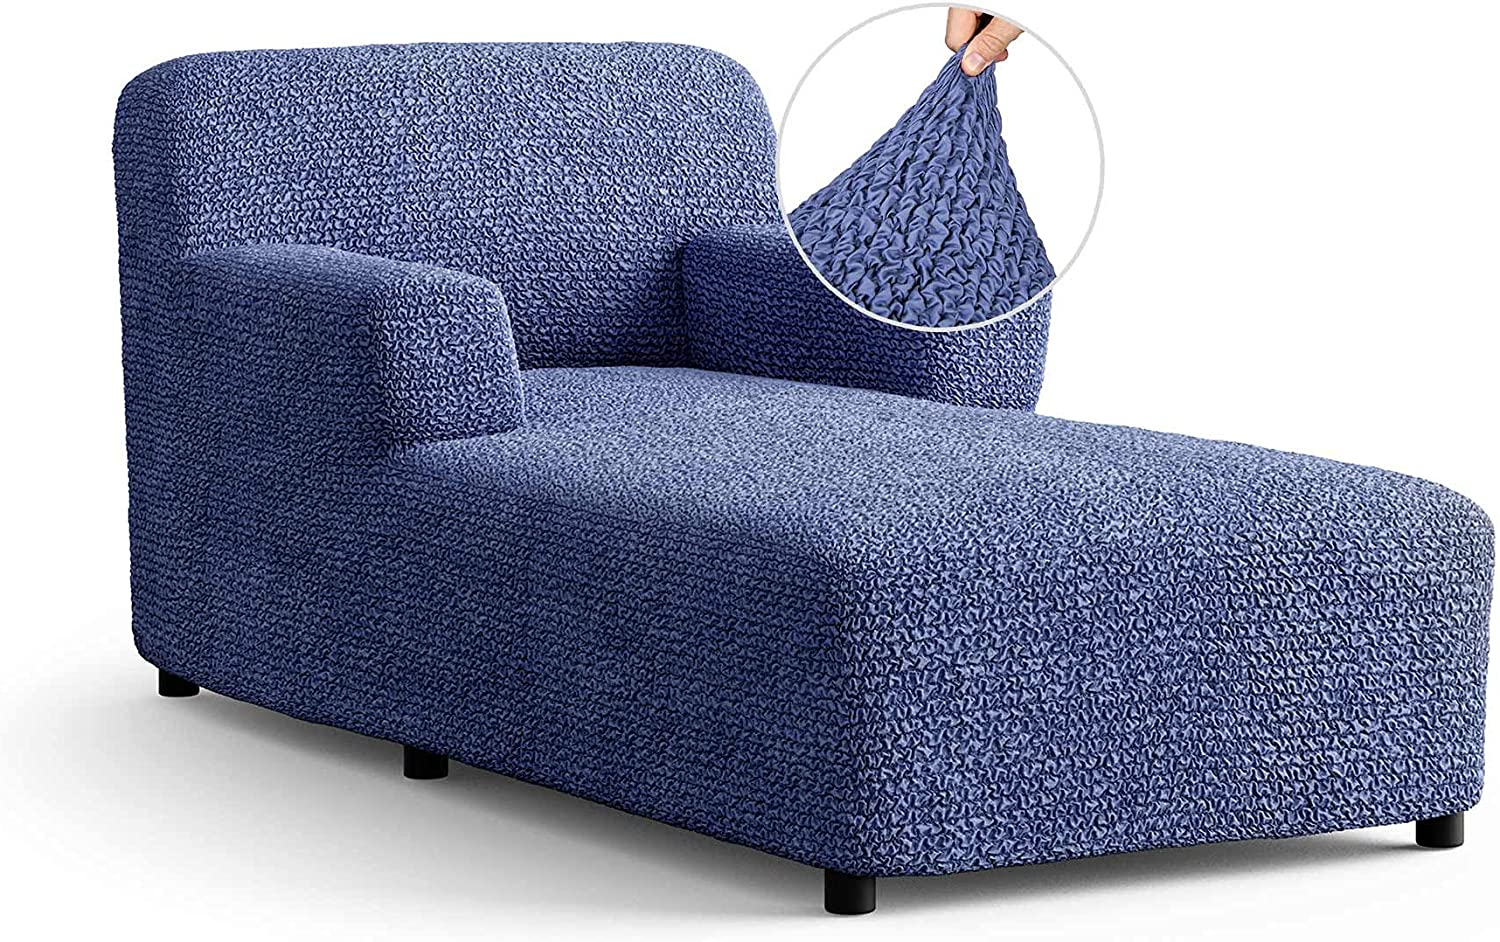 Chaise Lounge Cover - Lounge Chair Sofa Slipcover- Soft Polyester Fabric Slipcovers - 1-Piece Form Fit Stretch Furniture Slipcover - Microfibra Collection - Blue (Chaise Lounge)